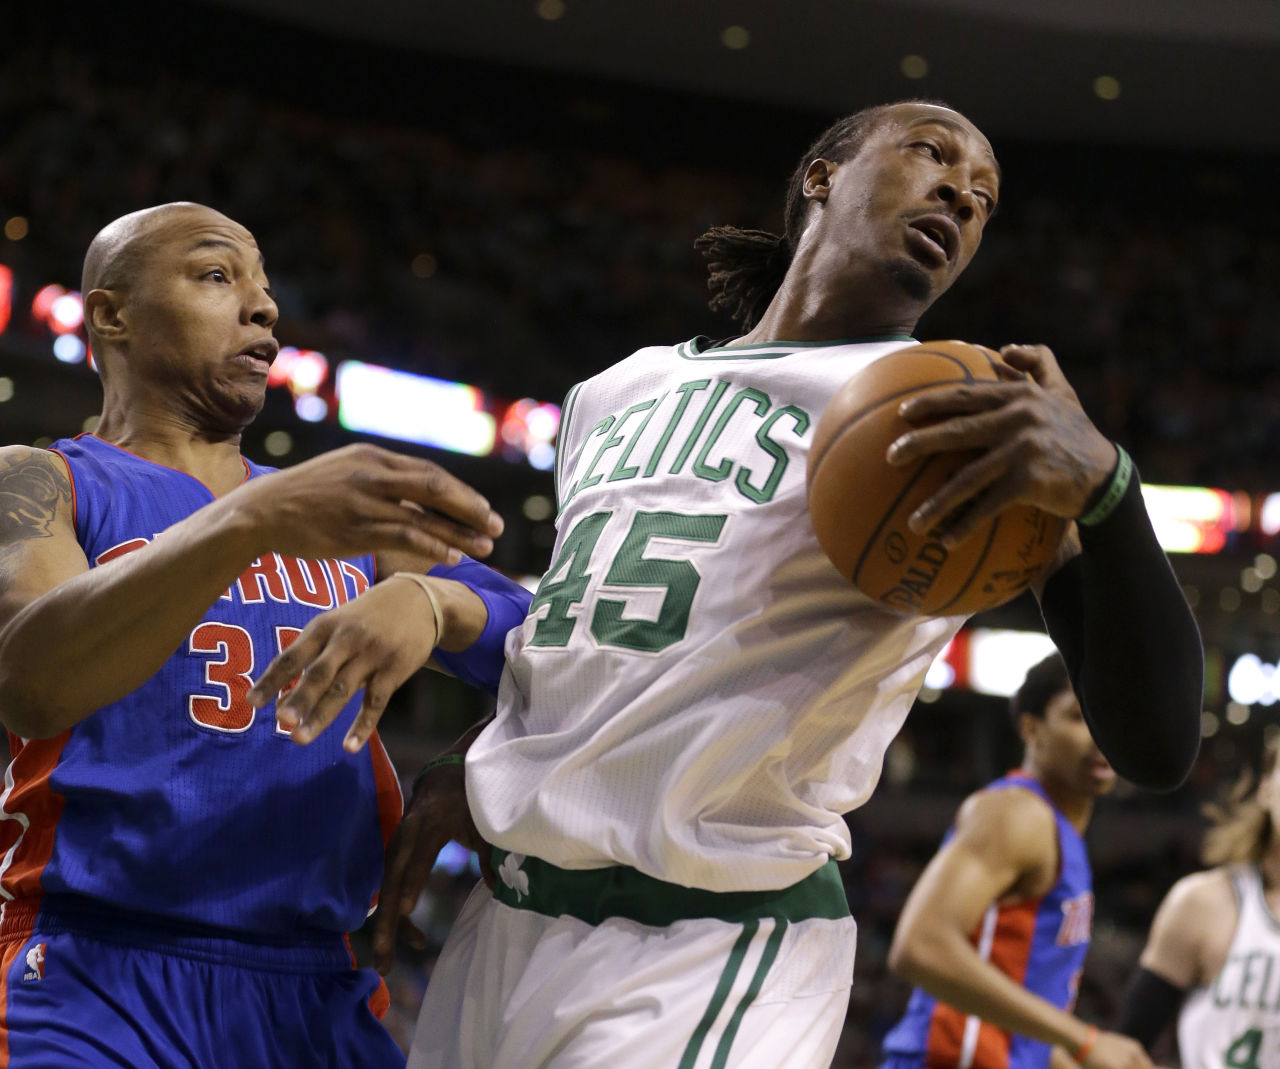 Detroit Pistons forward Caron Butler (31), and Boston Celtics forward Gerald Wallace (45), grapple over a loose ball in the second quarter Sunday's game. (Steven Senne/AP)